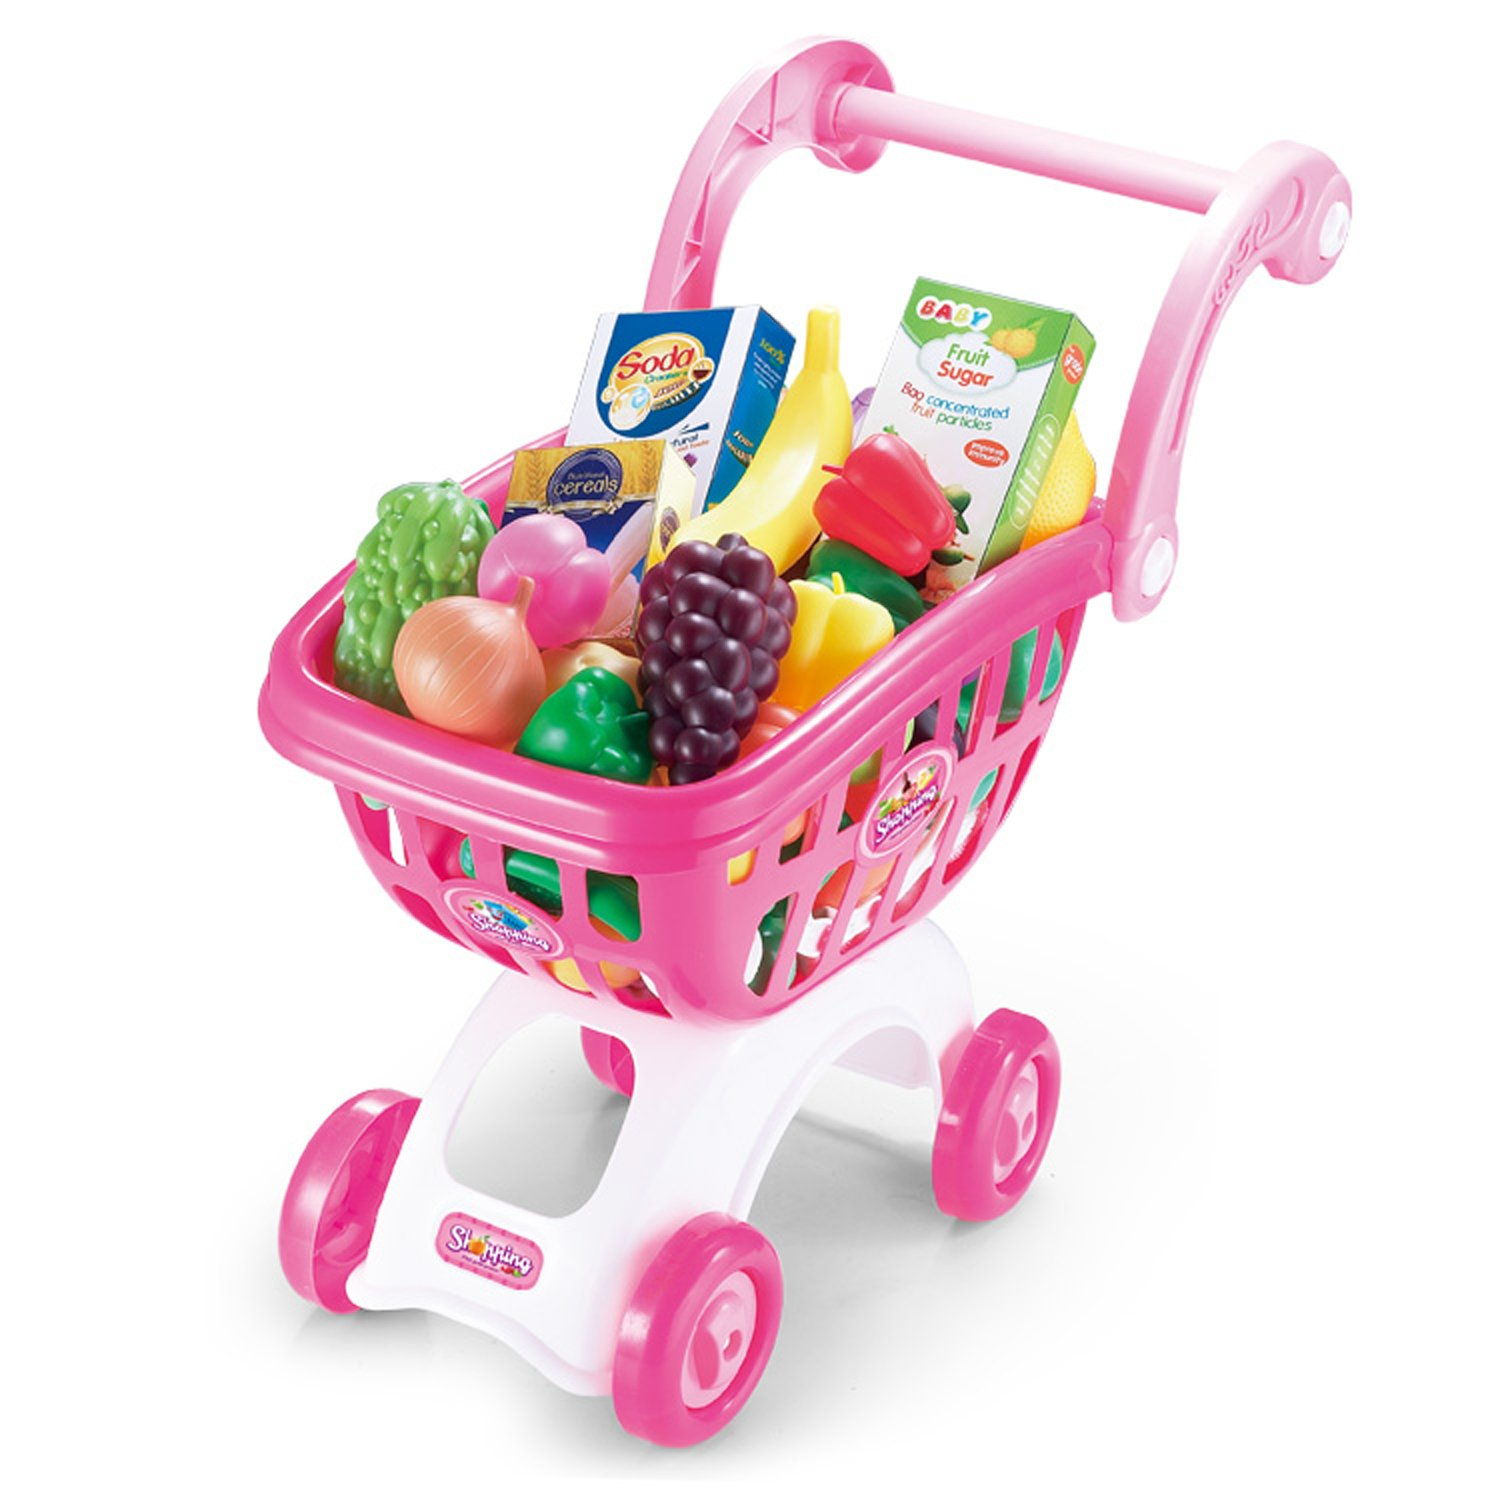 KISSKIDS 19' Large Plastic Shopping Cart with Accessories of Fruits, Vegetables, Drinks, Popular Pretend Toy for Children(Pink) by KISSKIDS